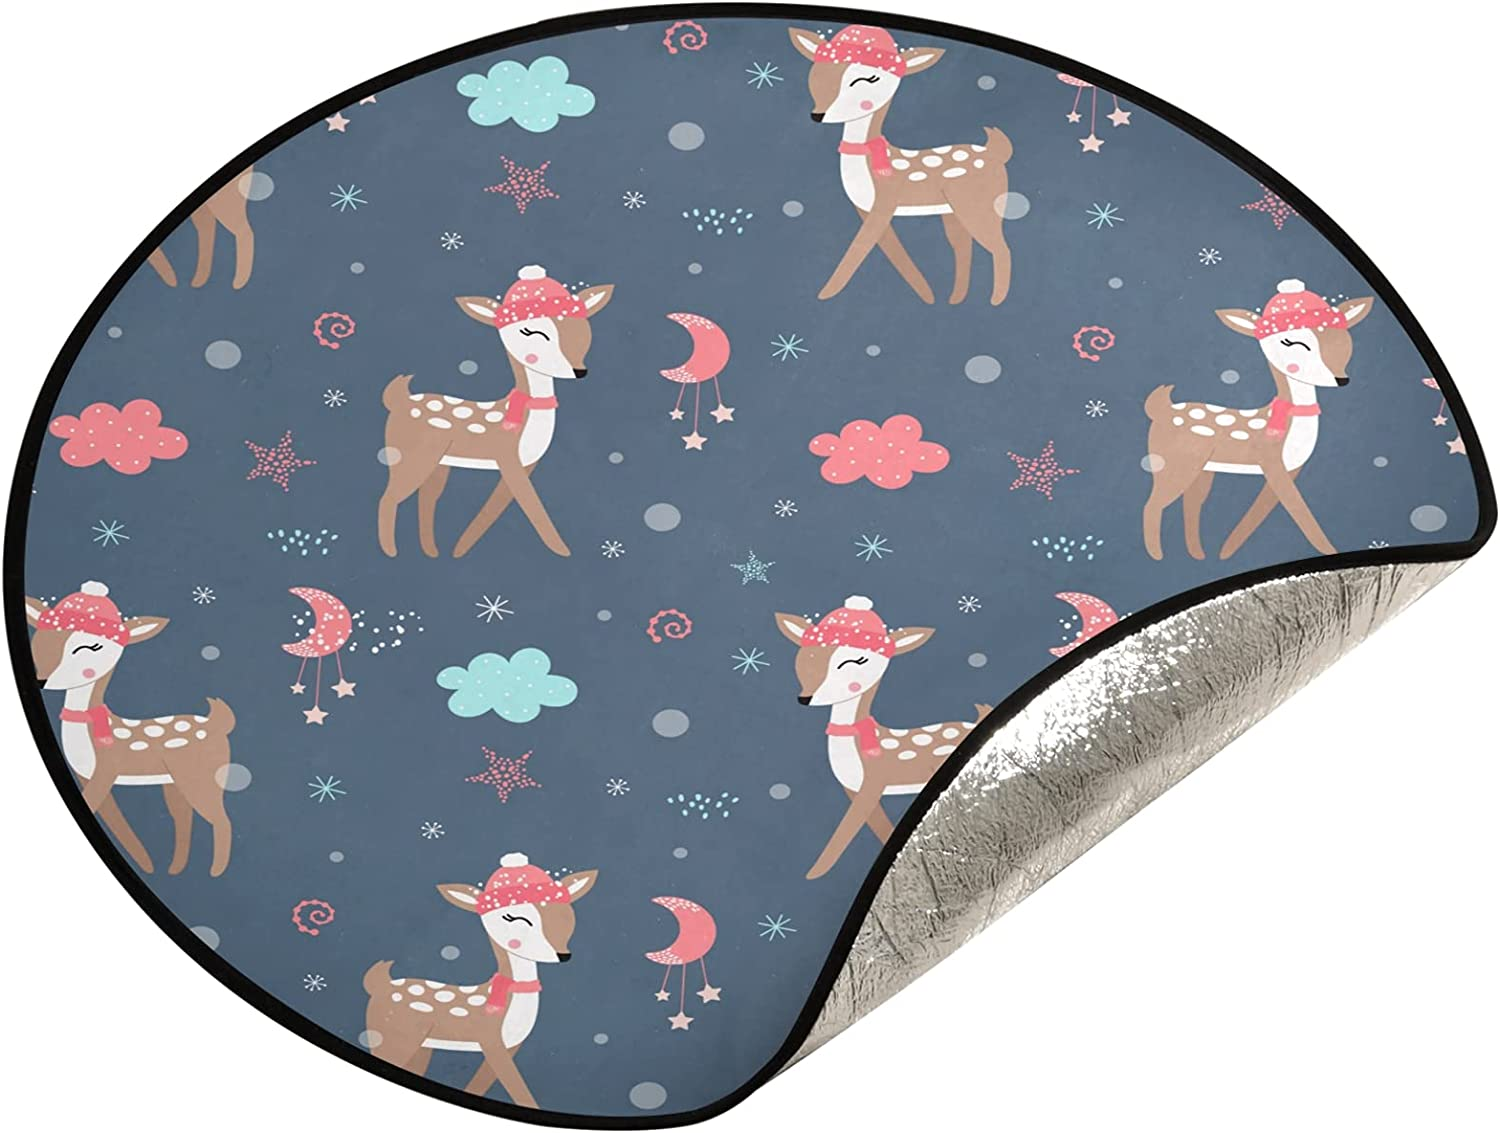 xigua supreme 28.3 Inch Christmas Tree Mat Stand Cute - Deers Max 45% OFF